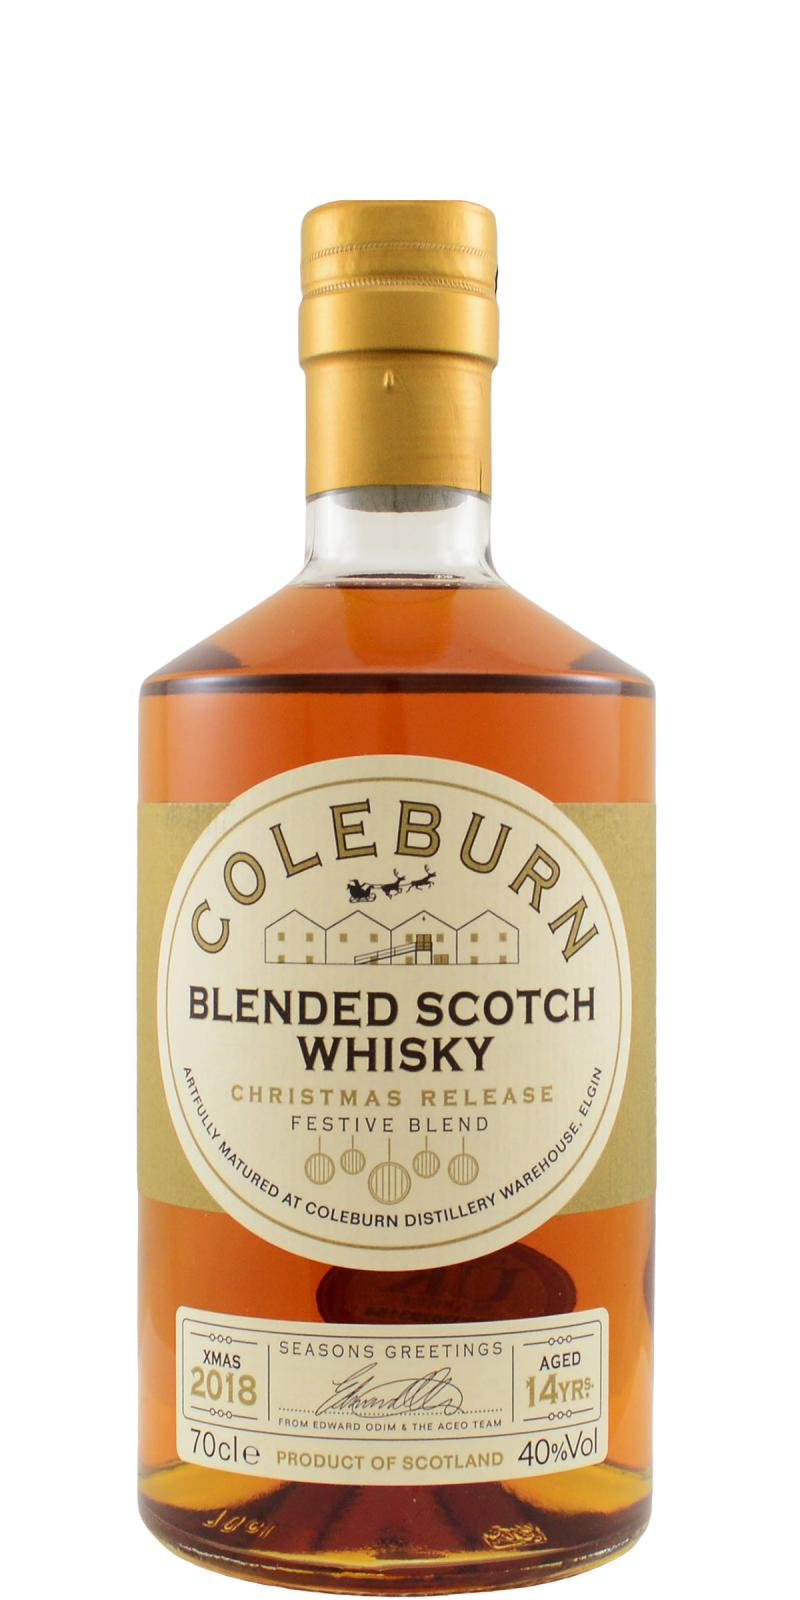 Coleburn Blended Scotch Whisky AcL